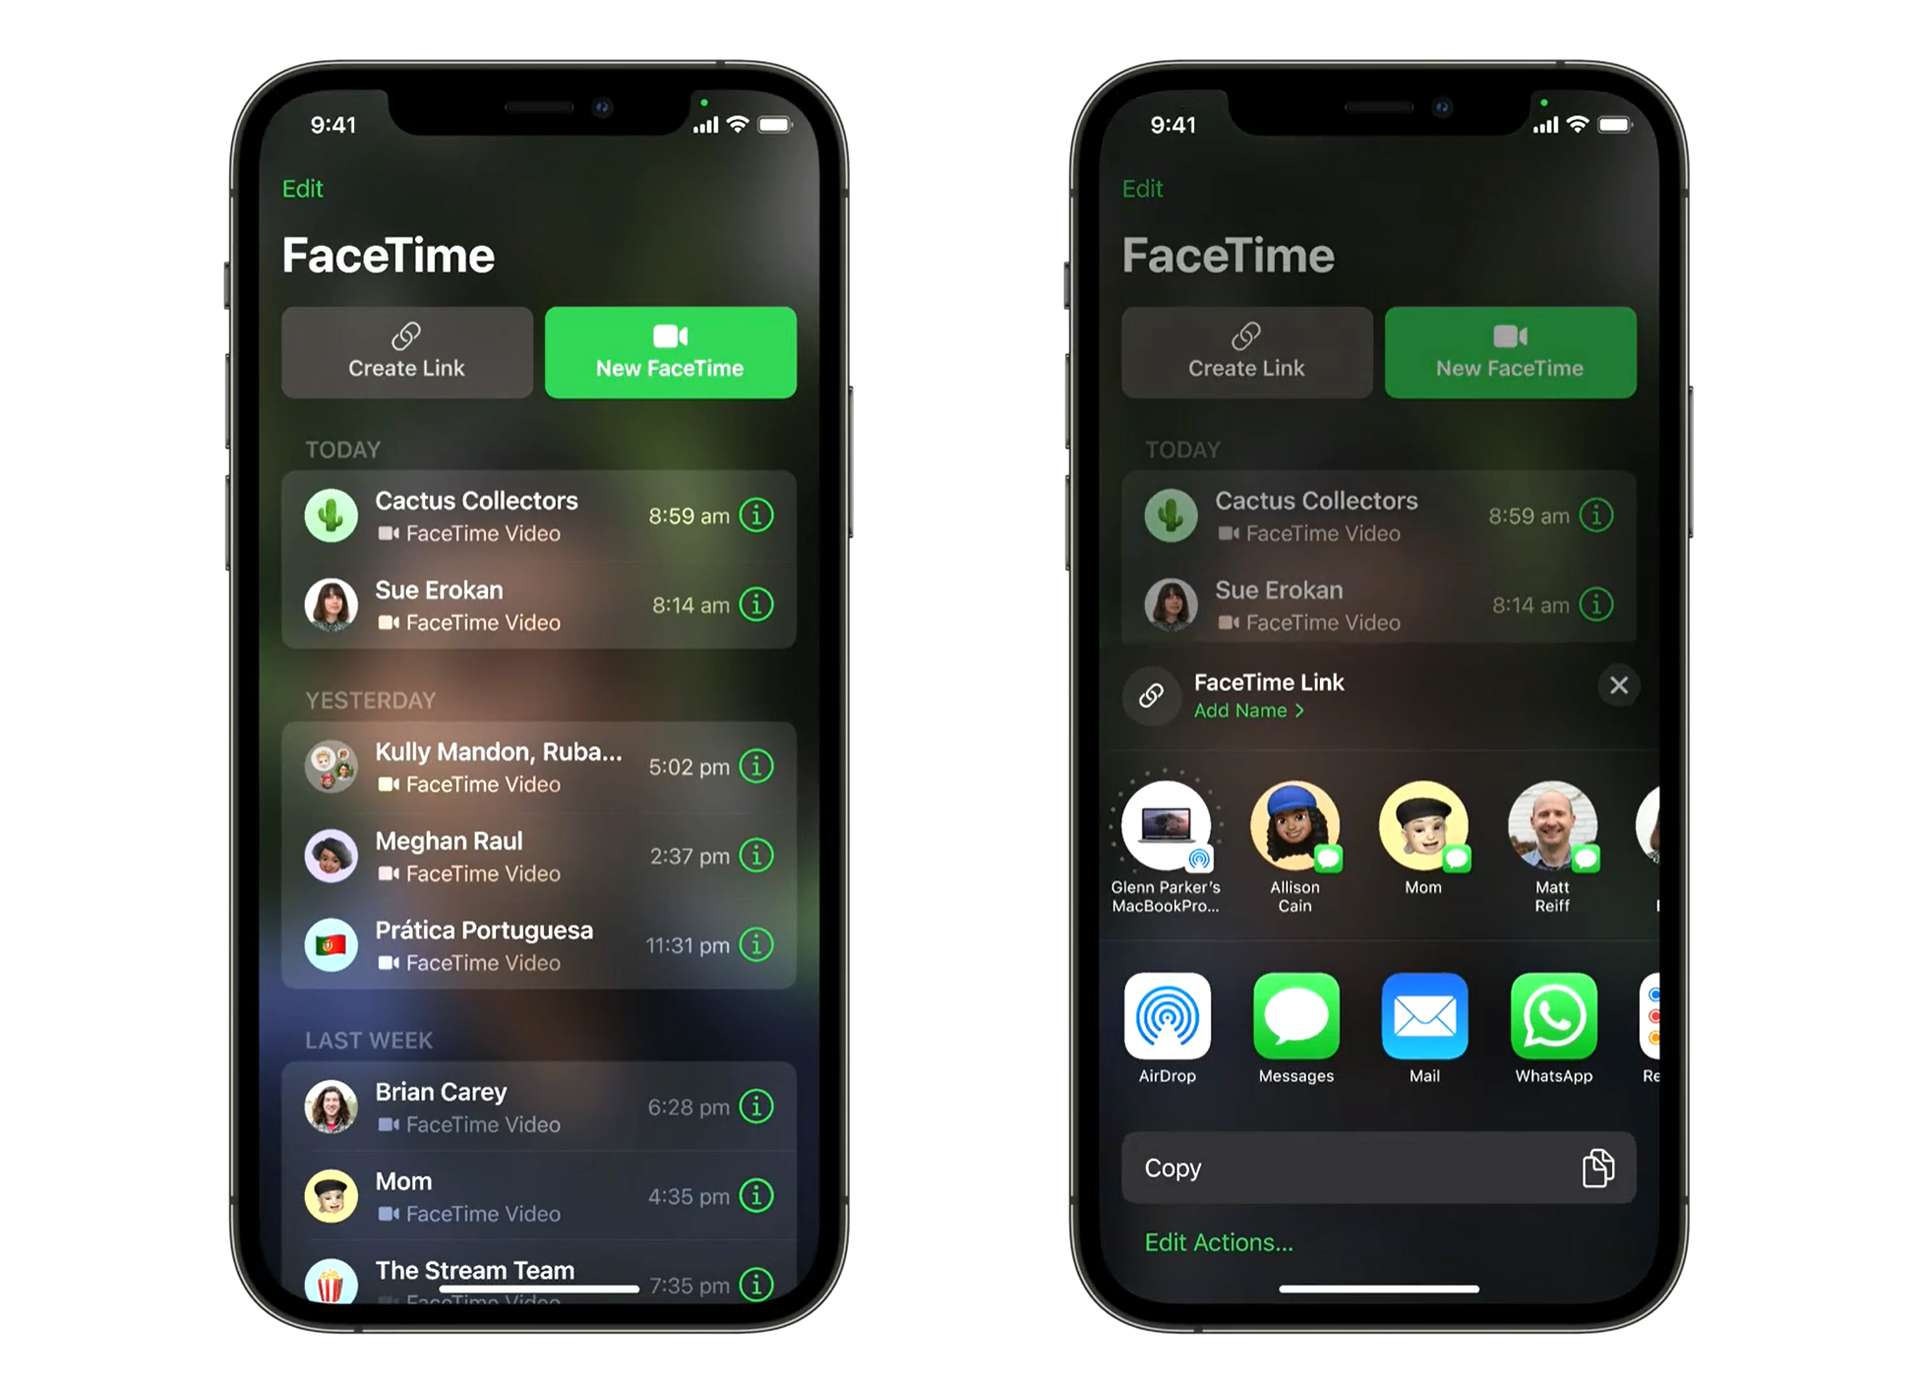 Preview images of the upcoming new FaceTime app from Apple.